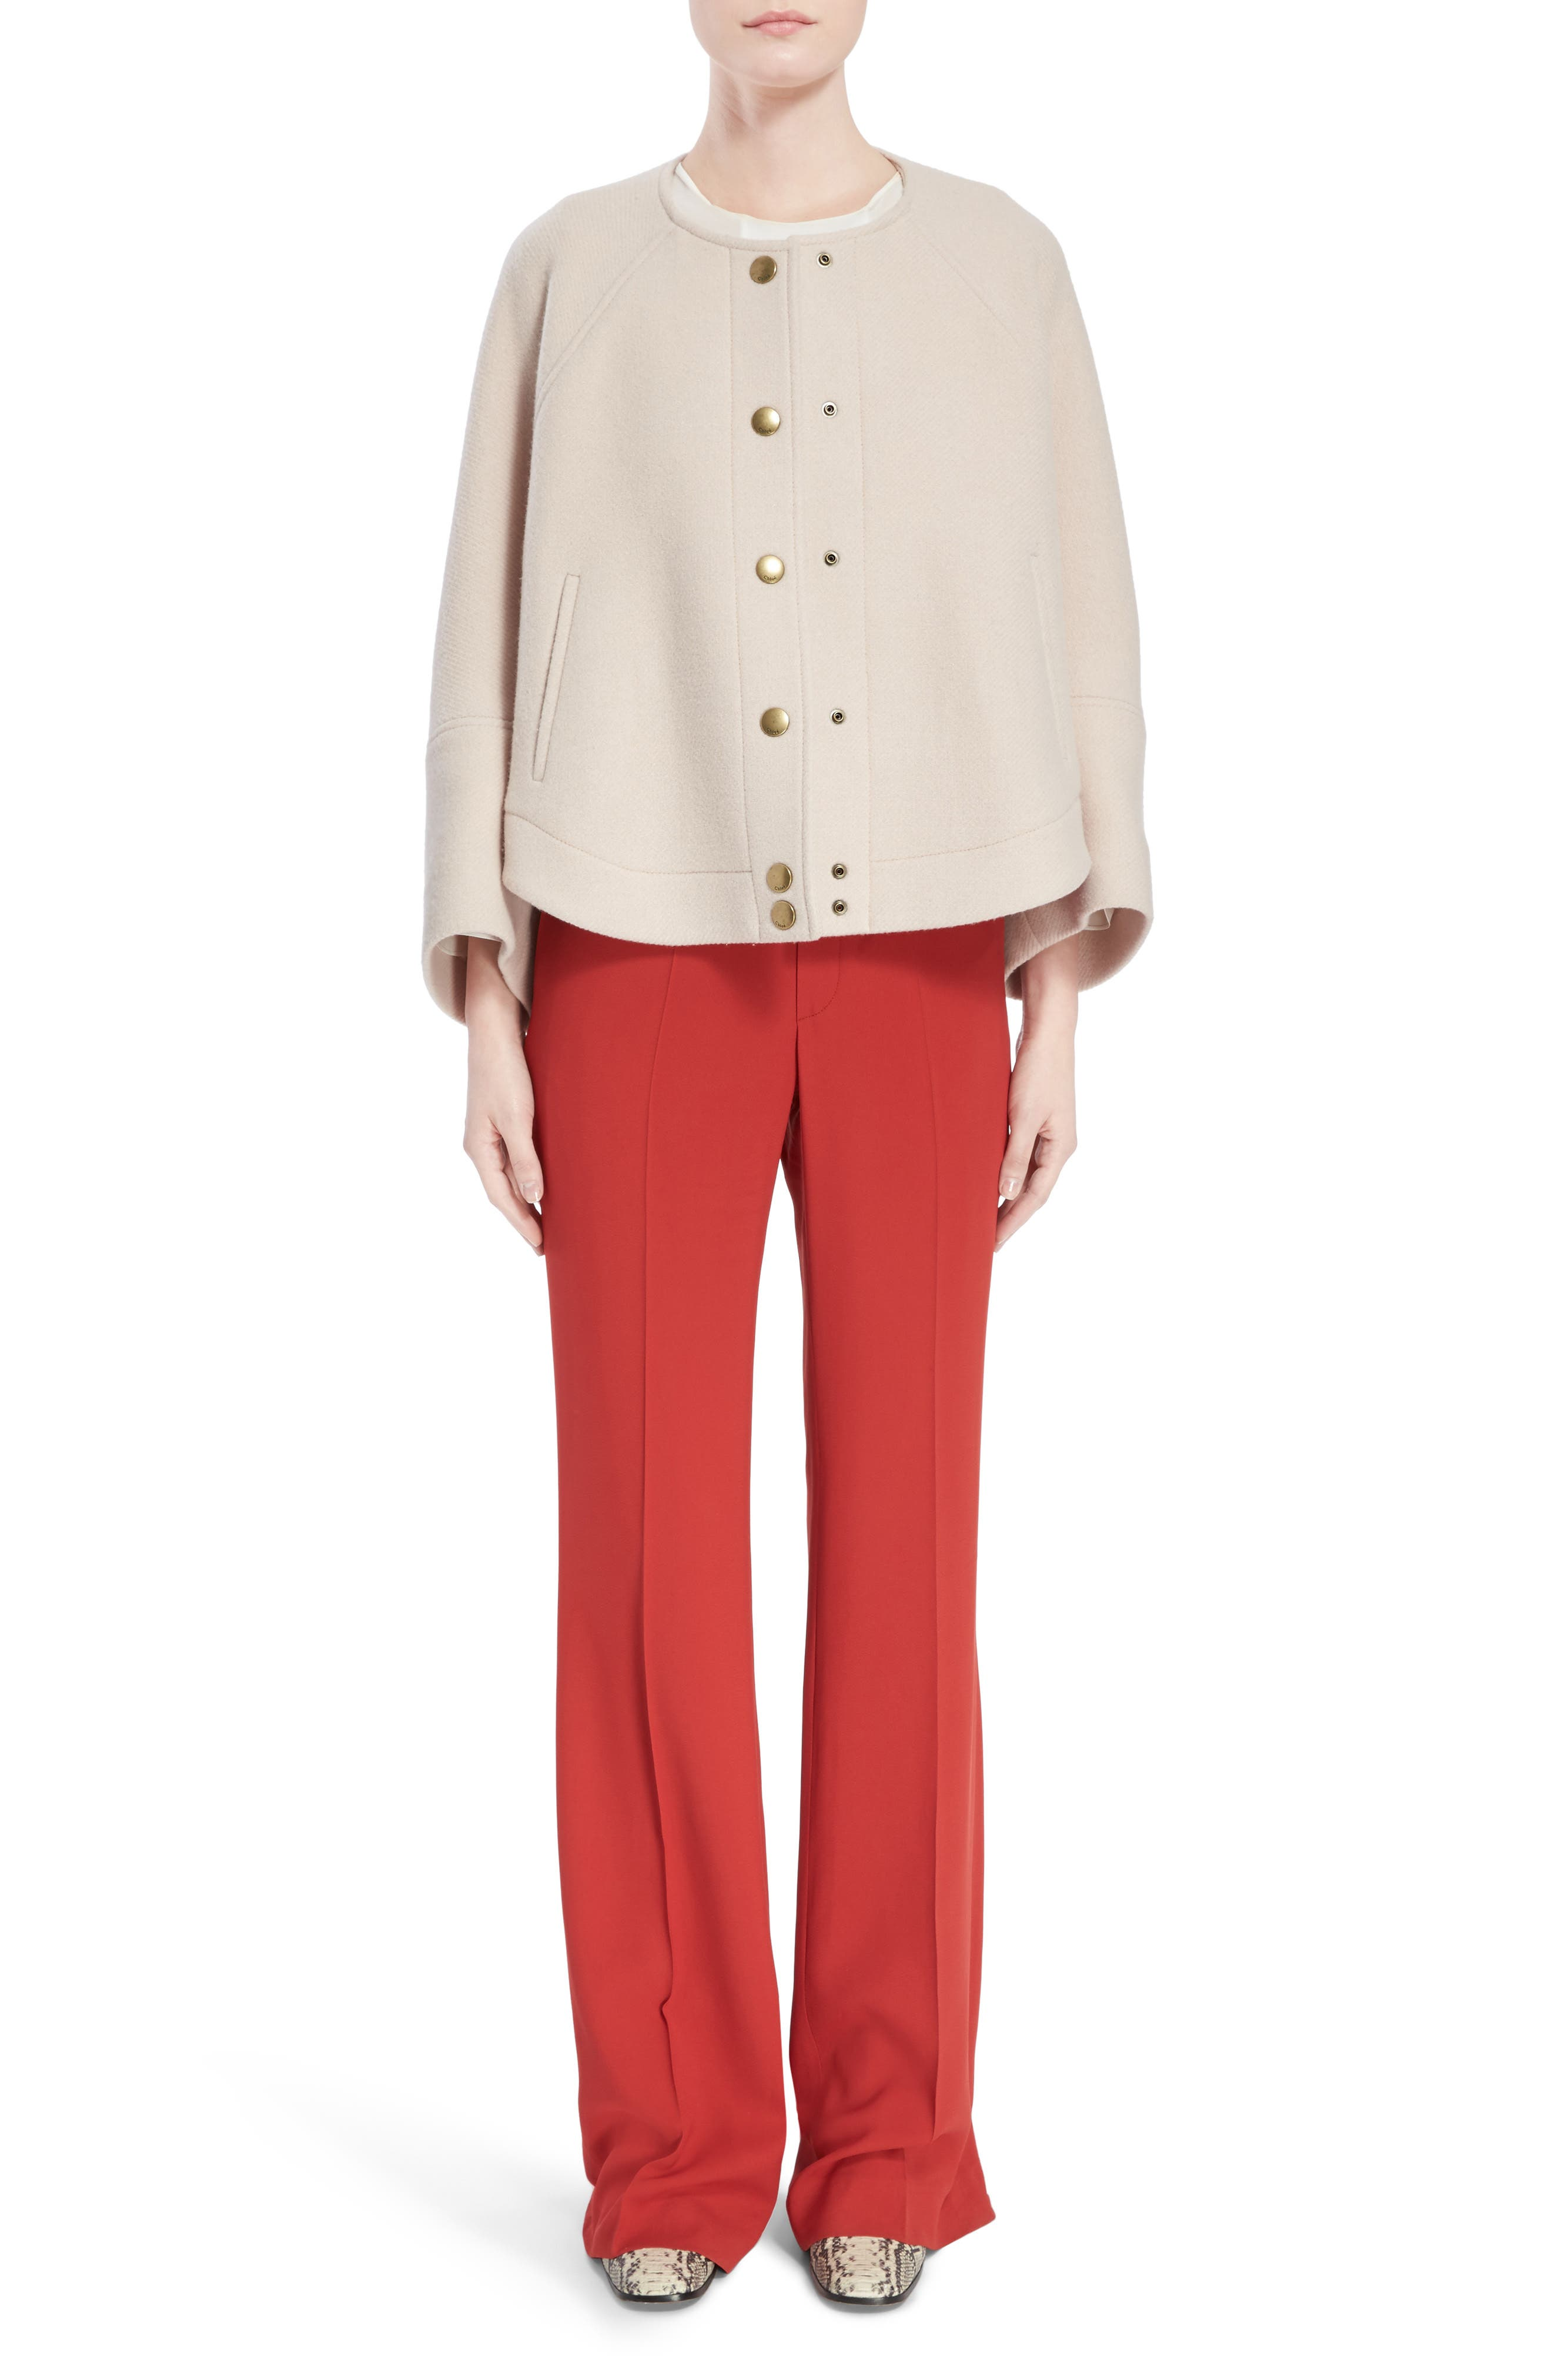 Cady Flare Suiting Pants,                             Alternate thumbnail 9, color,                             Ginger Red